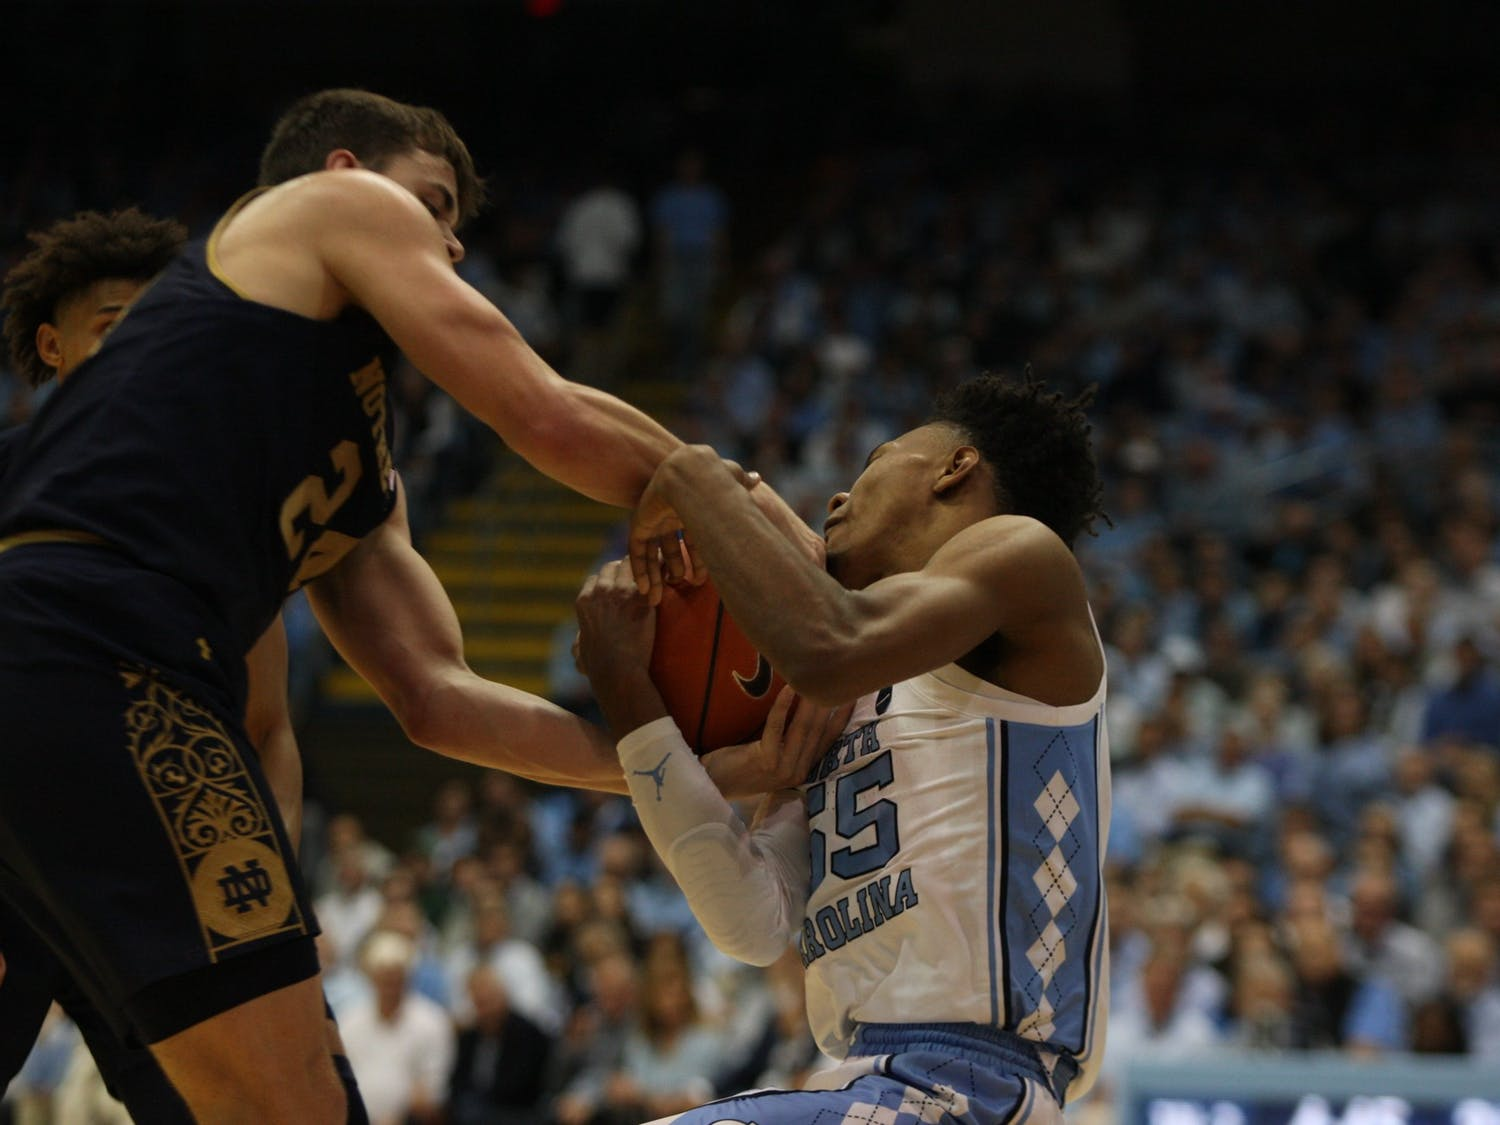 UNC guard Christian Keeling (55) and Notre Dame guard Robby Carmody (24) attempt to rip the ball out of each other's hands on Wednesday, Nov. 6, 2019 in the Dean E. Smith Center. The Tar Heels beat the Fighting Irish 76-65.